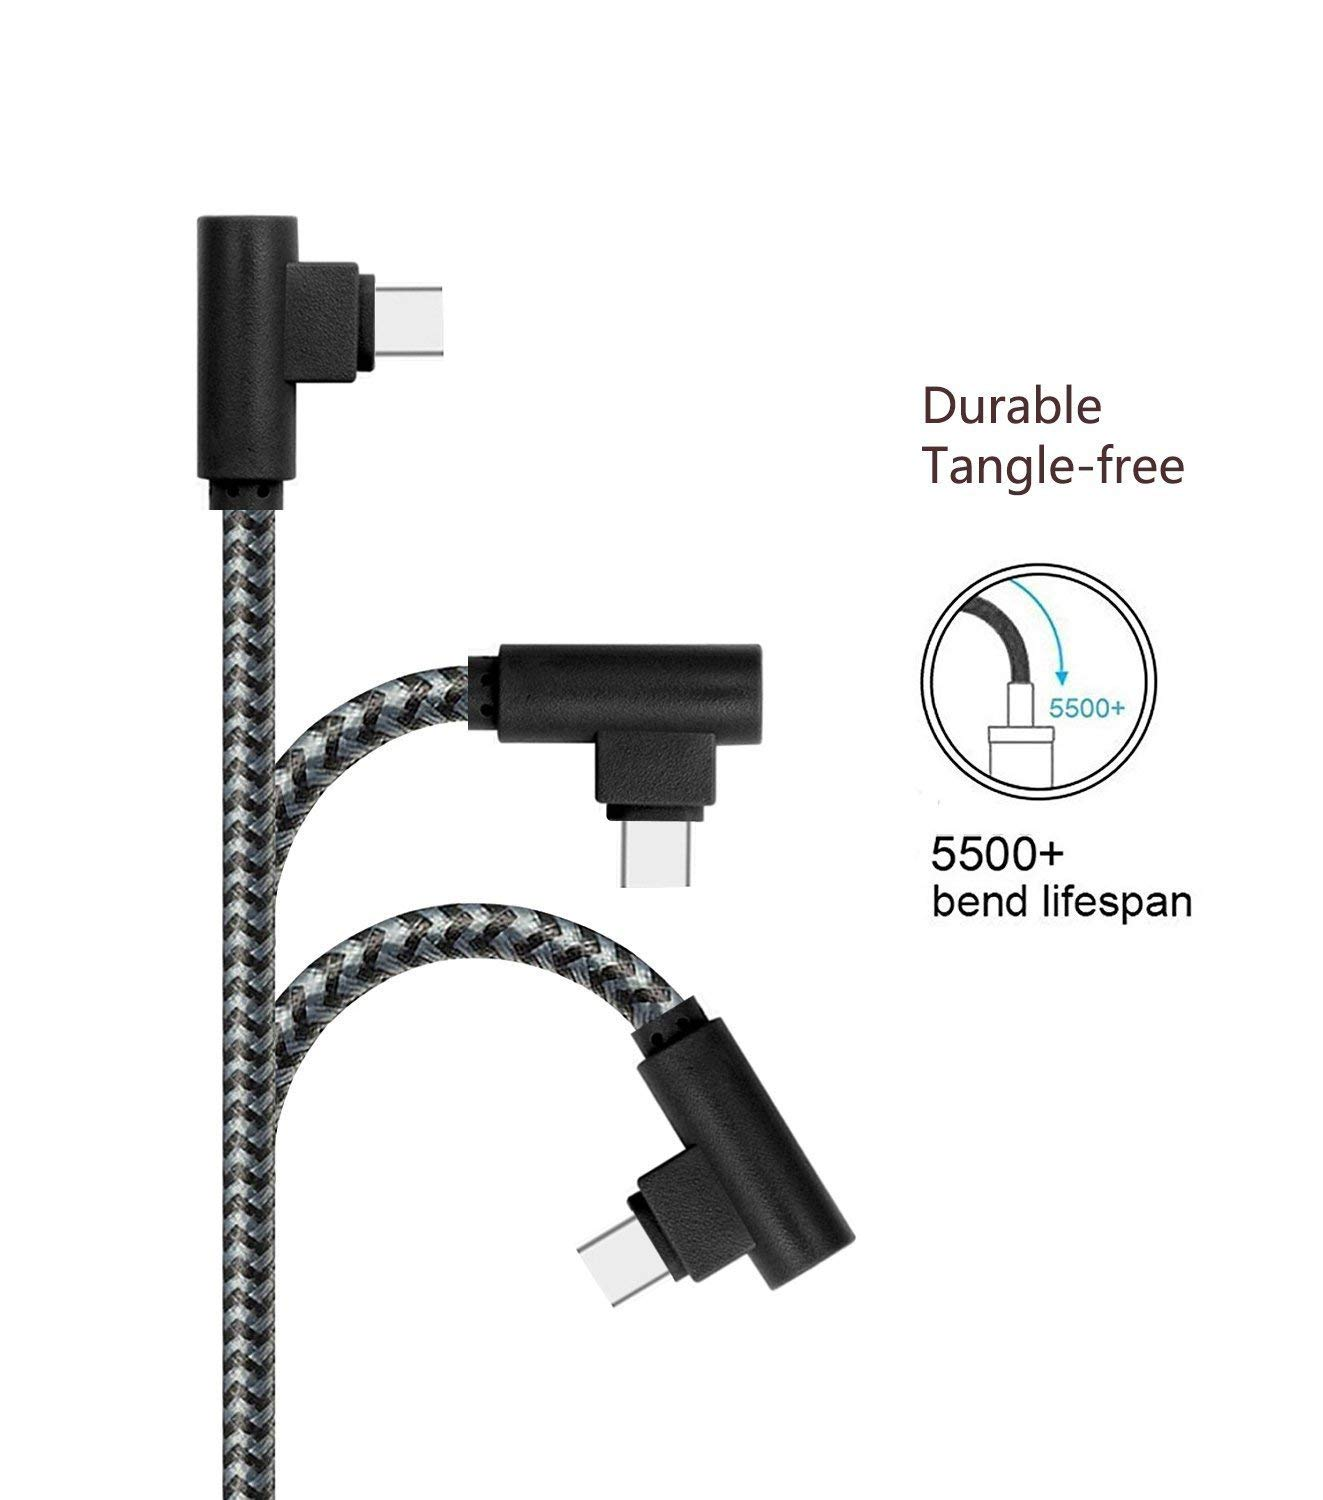 amazon type c cable 90 degree most convenient usb c cable 3 ZTE Zmax Pro Screen Replacement amazon type c cable 90 degree most convenient usb c cable 3 pack 10ft fast charger cord usb 2 patible samsung galaxy s9 note 9 8 s8 plus lg v30